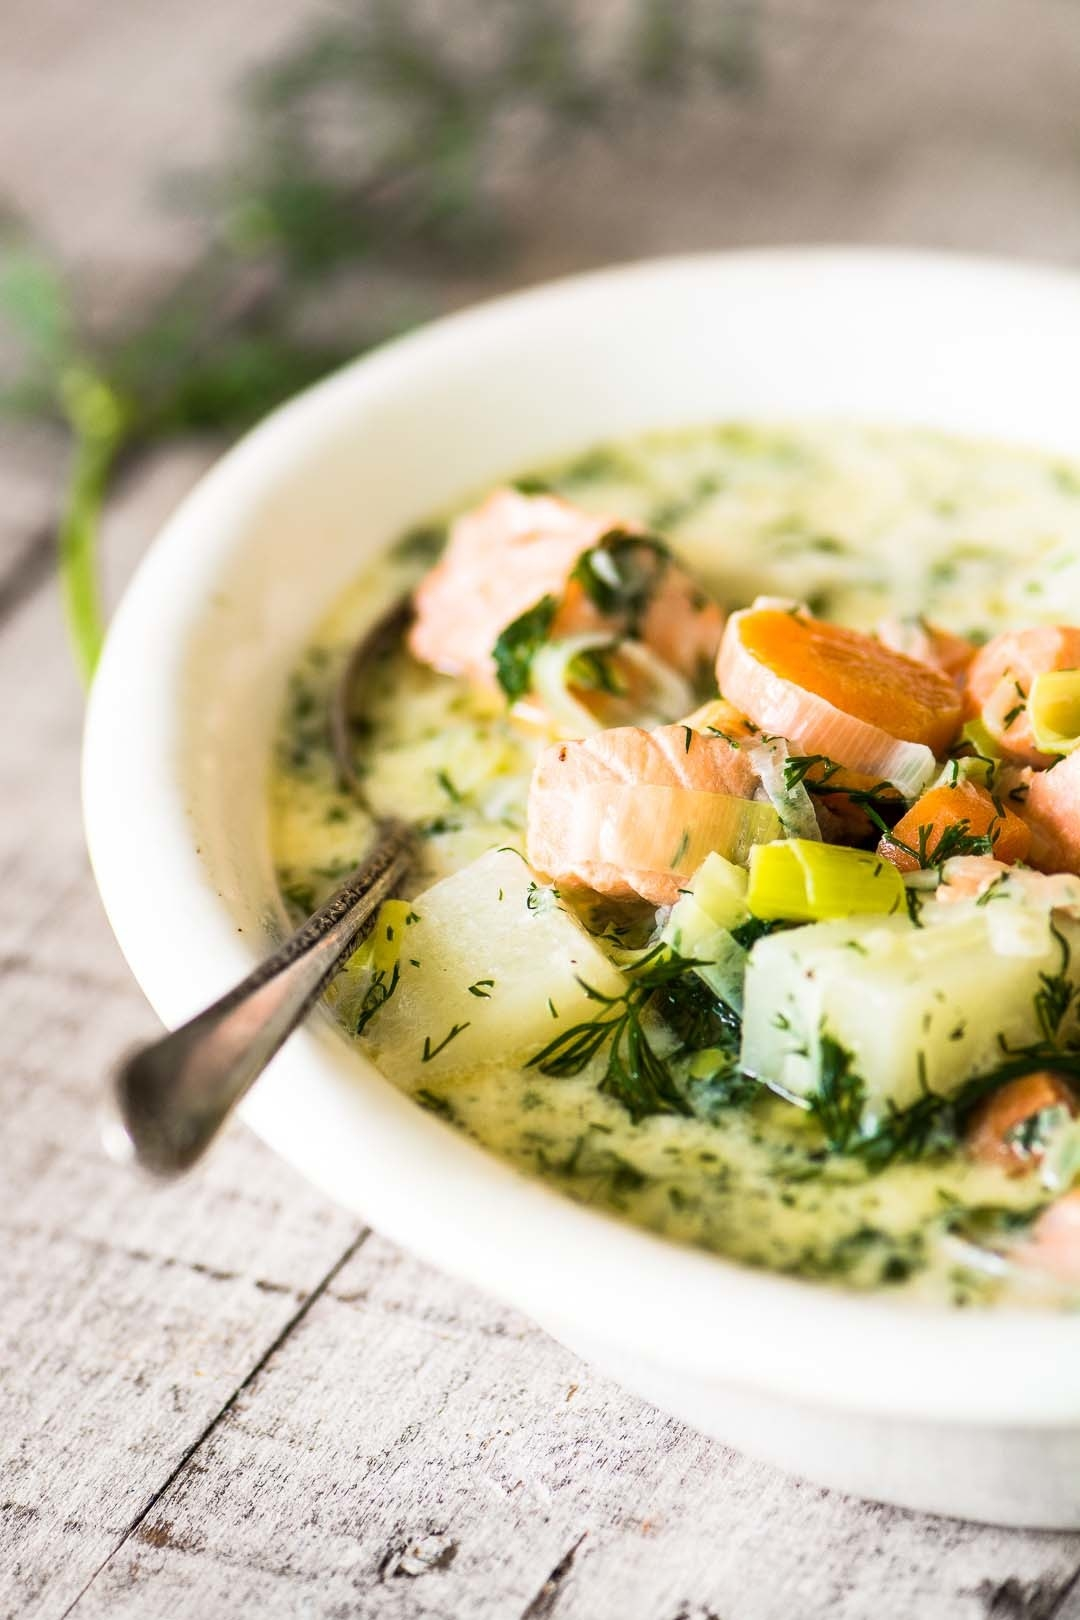 A bowl of creamy chowder with pieces of salmon, potatoes, and fresh dill.